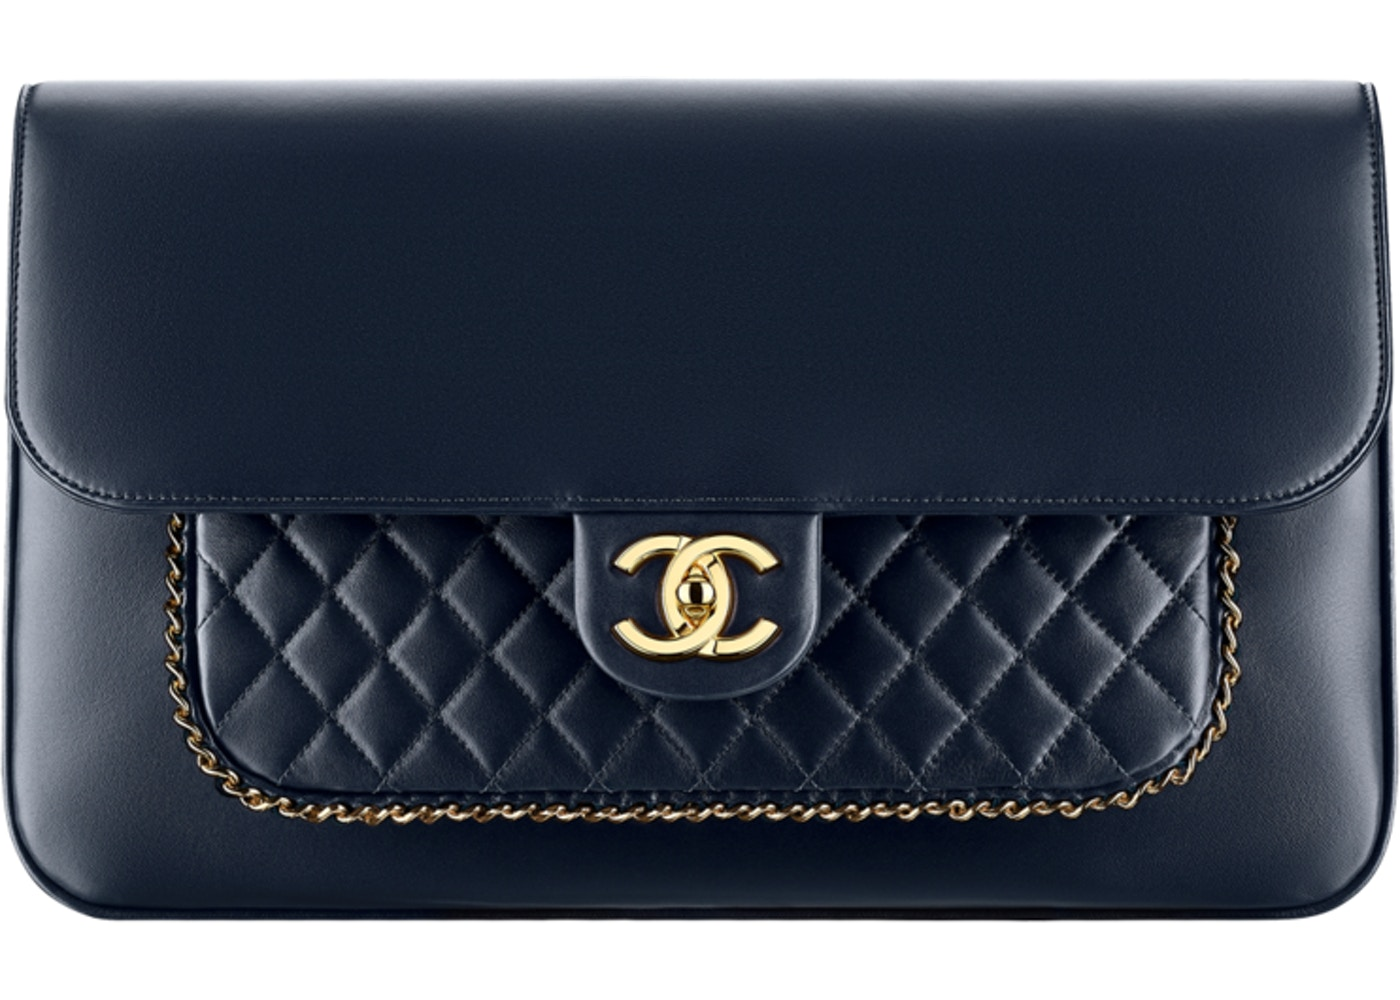 a9aee82353c1 Chanel Flap Clutch Diamond metiers d art Quilted Navy Blue